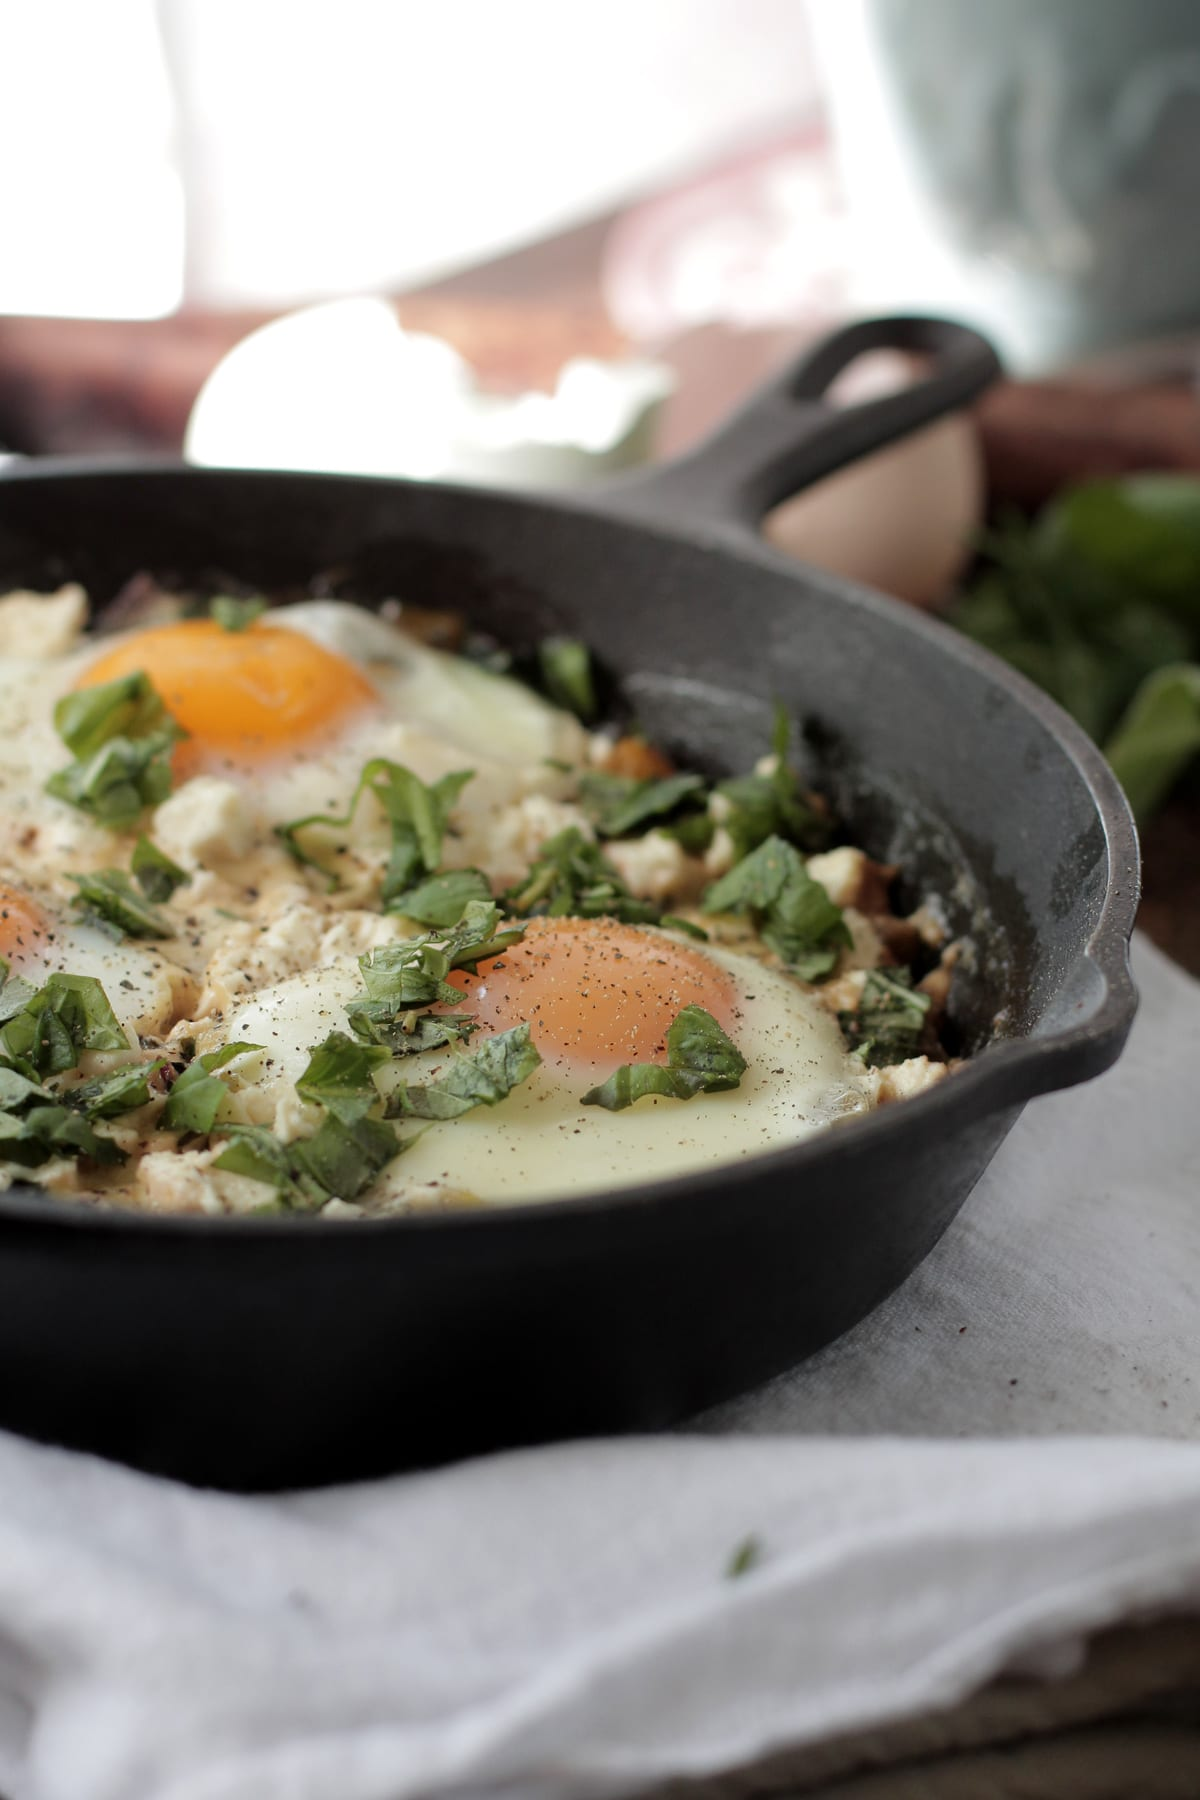 ... Swiss Chard and Eggs pairs perfectly with fresh toast, yummy biscuits